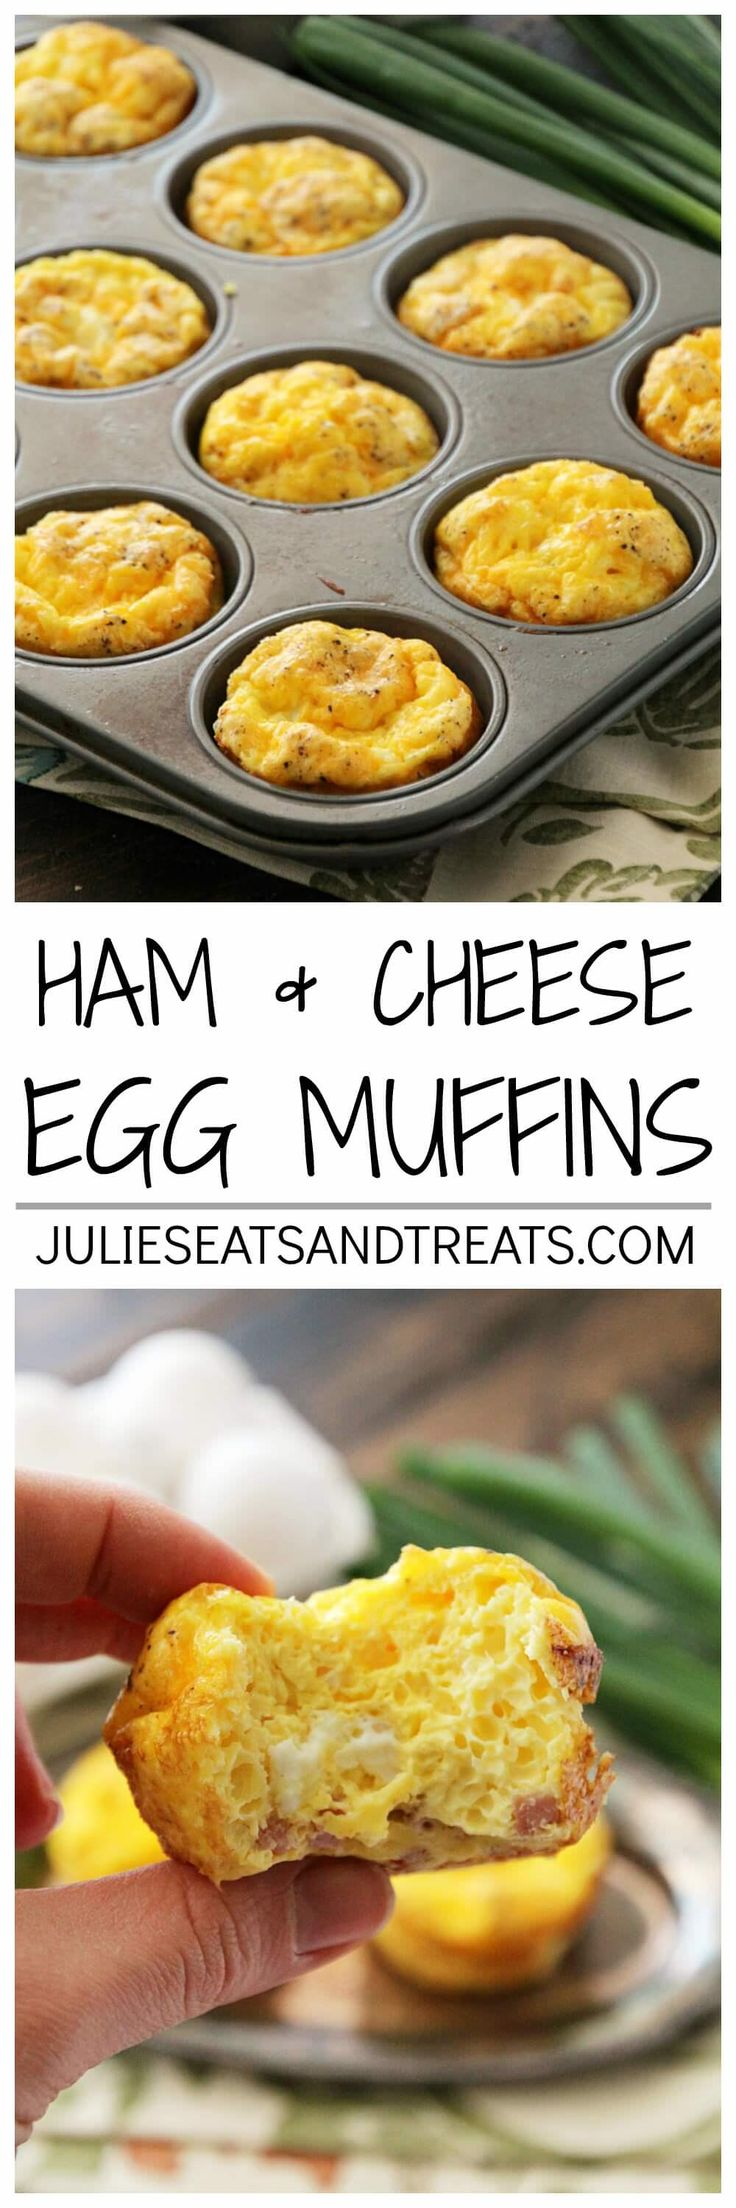 Ham & Cheese Egg Muffins ~ Quick, Easy and Delicious Breakfast or Snack! Fluffy Egg Muffins with Ham & Cheese! via @julieseats